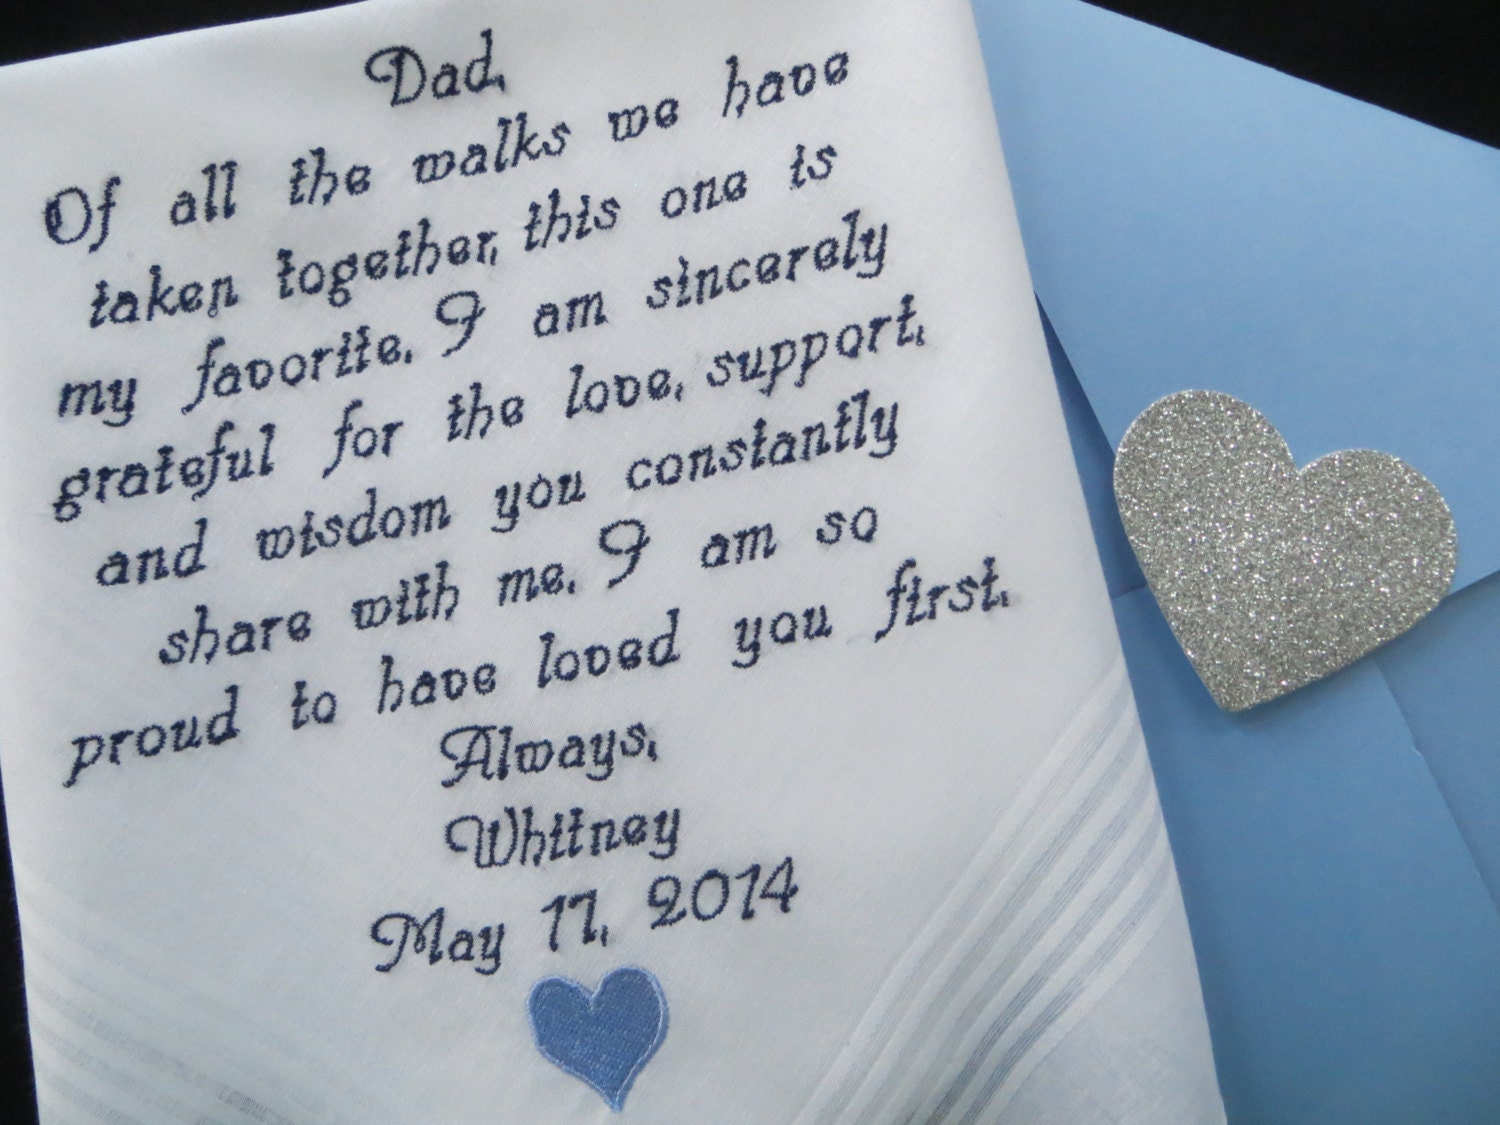 Wedding Day Gift Dad : Ideas Gift For Dad On Wedding Day wedding handkerchief for dad ...